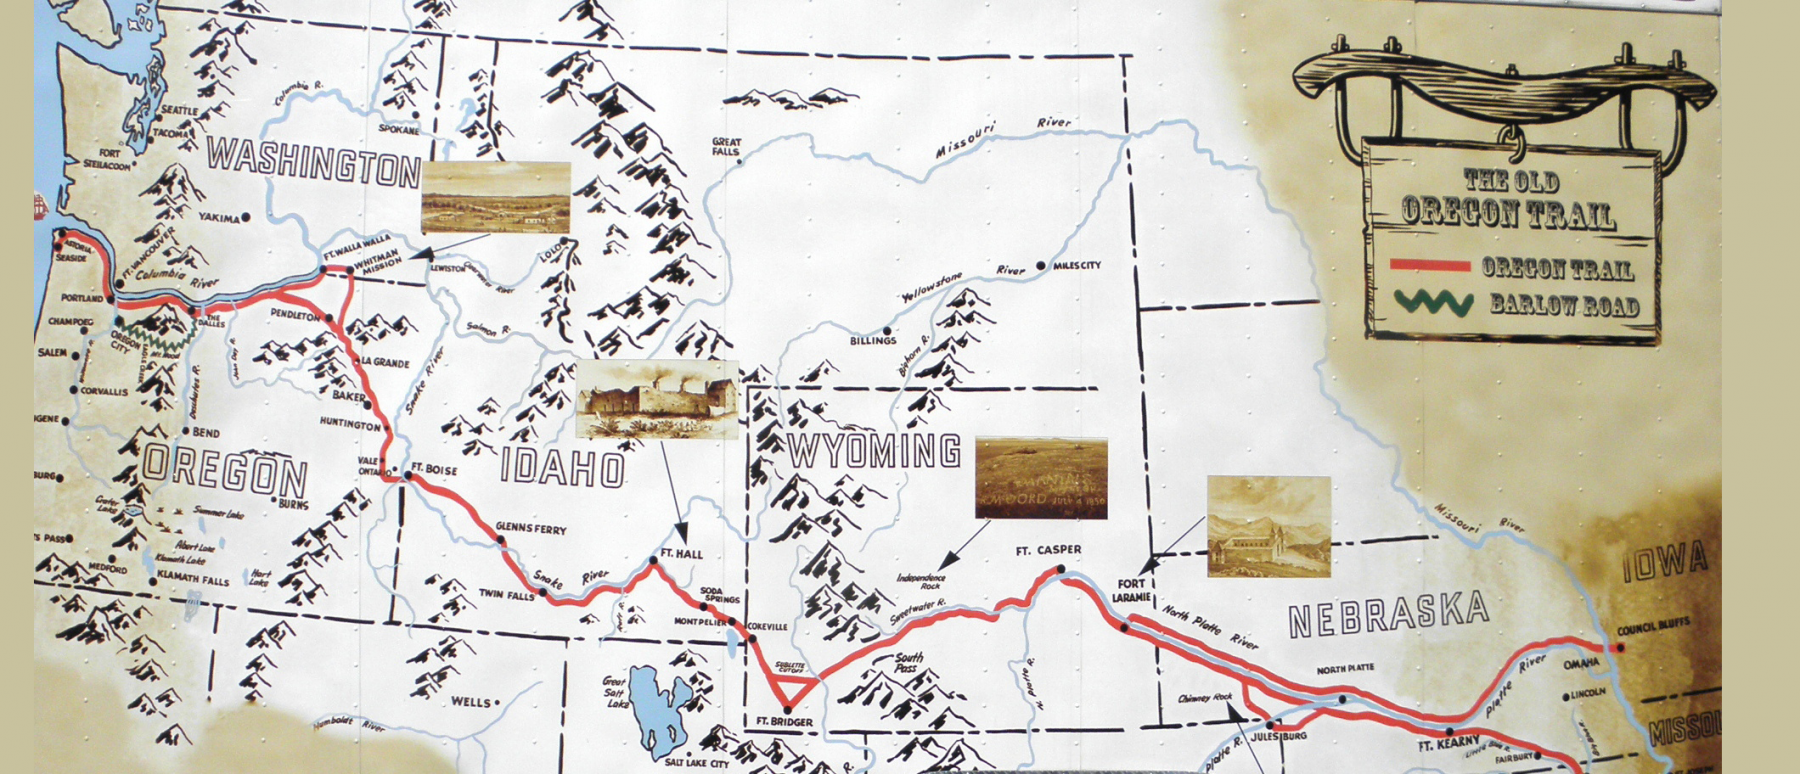 Oregon Trail Live at Willamette Heritage Center on Saturday, September 17th